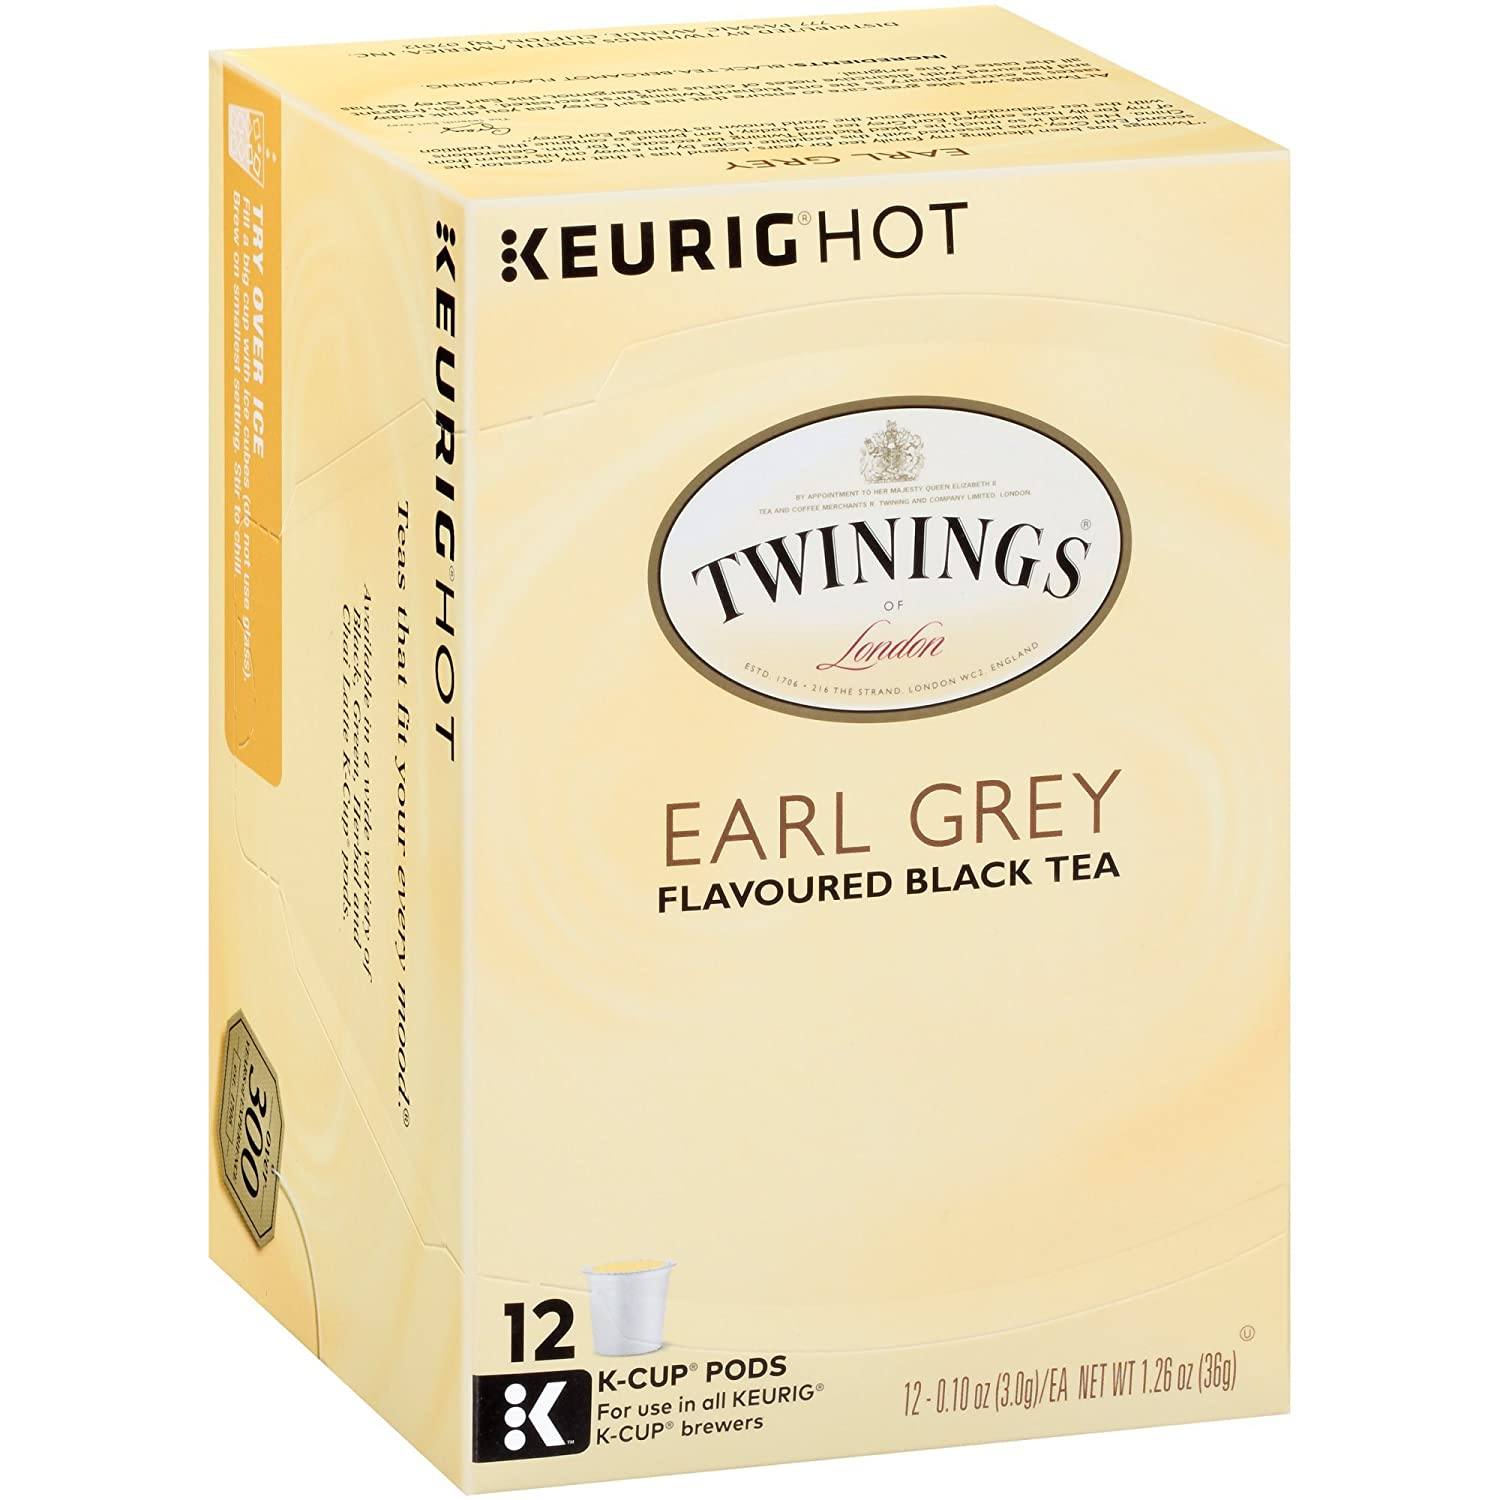 Twinings of London Earl Grey Tea K-Cups for Keurig, 12 Count (Pack of 6) - Packaging May Vary